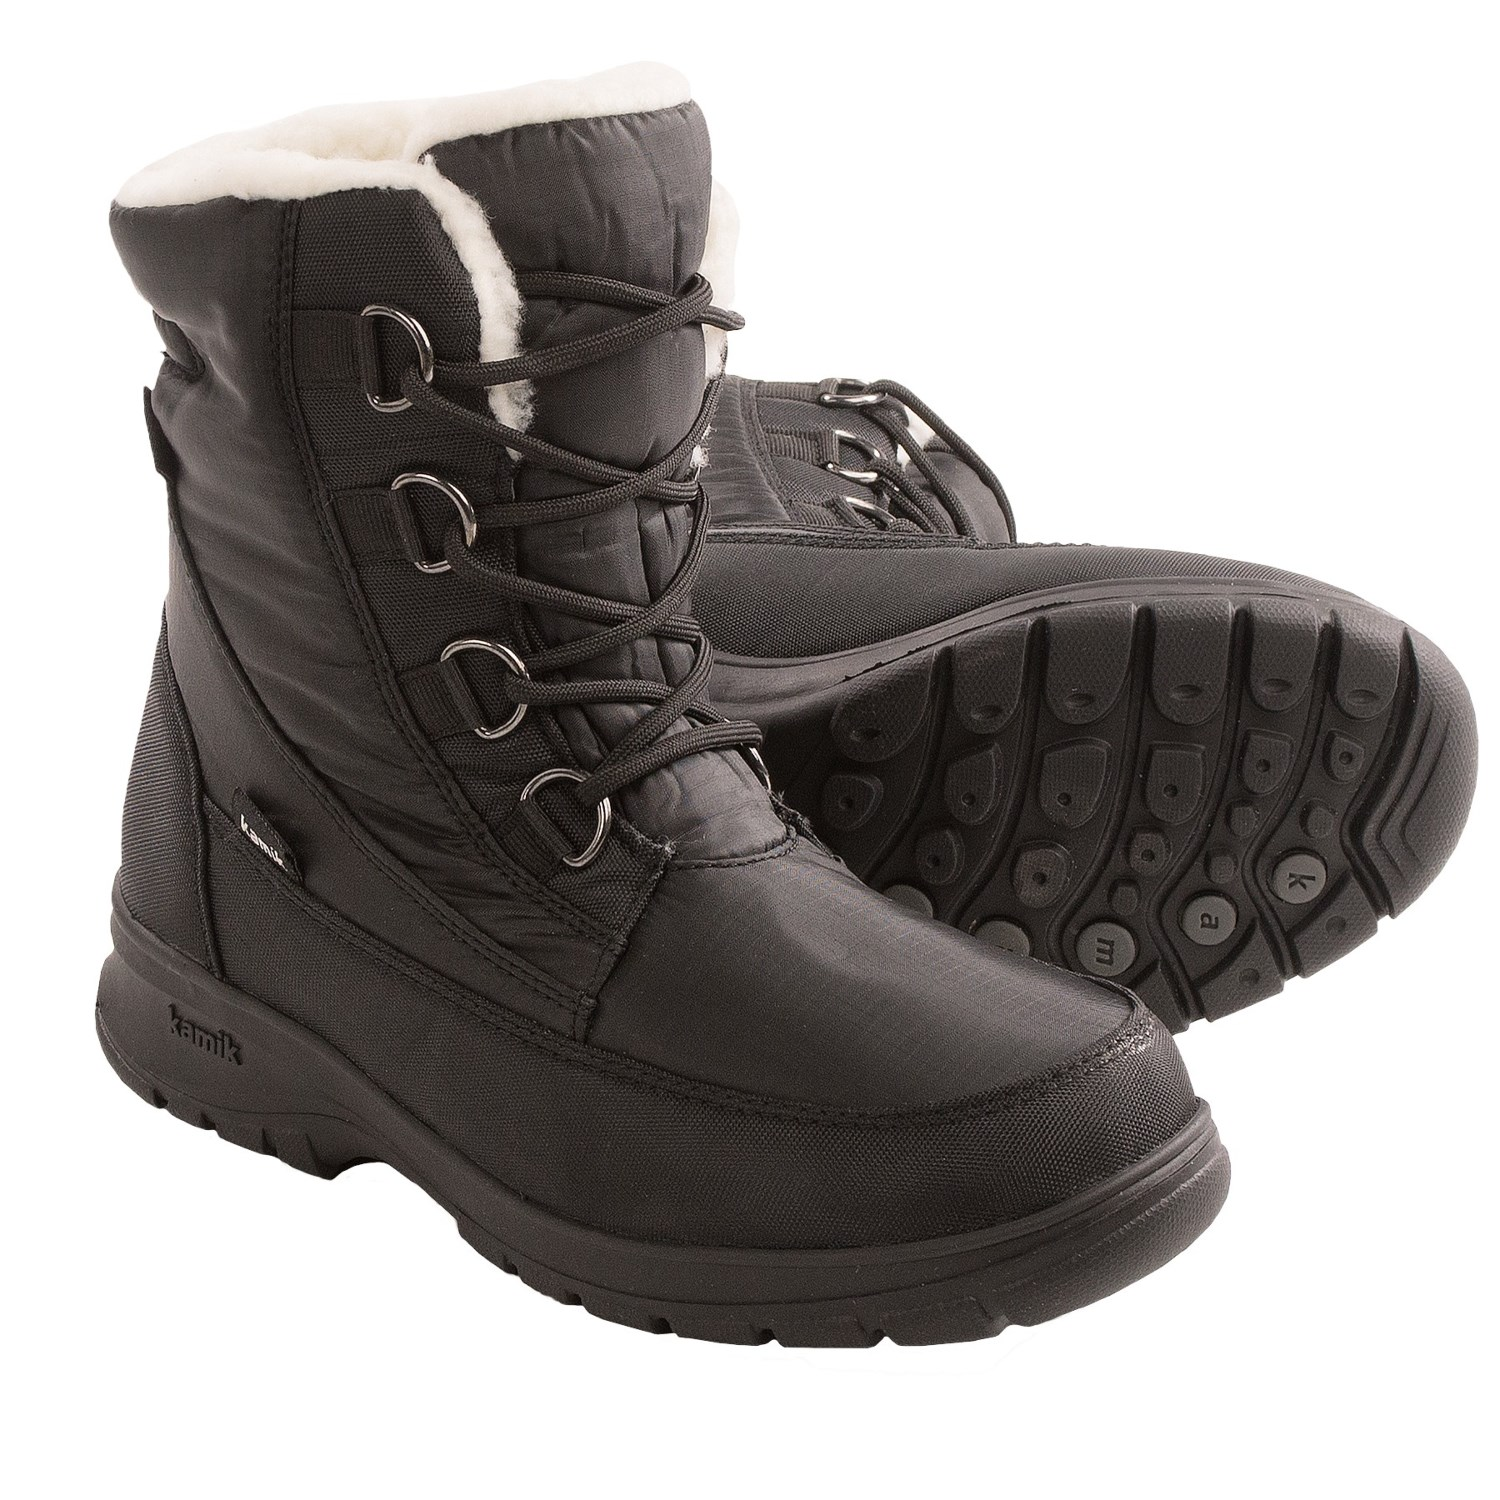 Snow Boots Womens Waterproof | Homewood Mountain Ski Resort